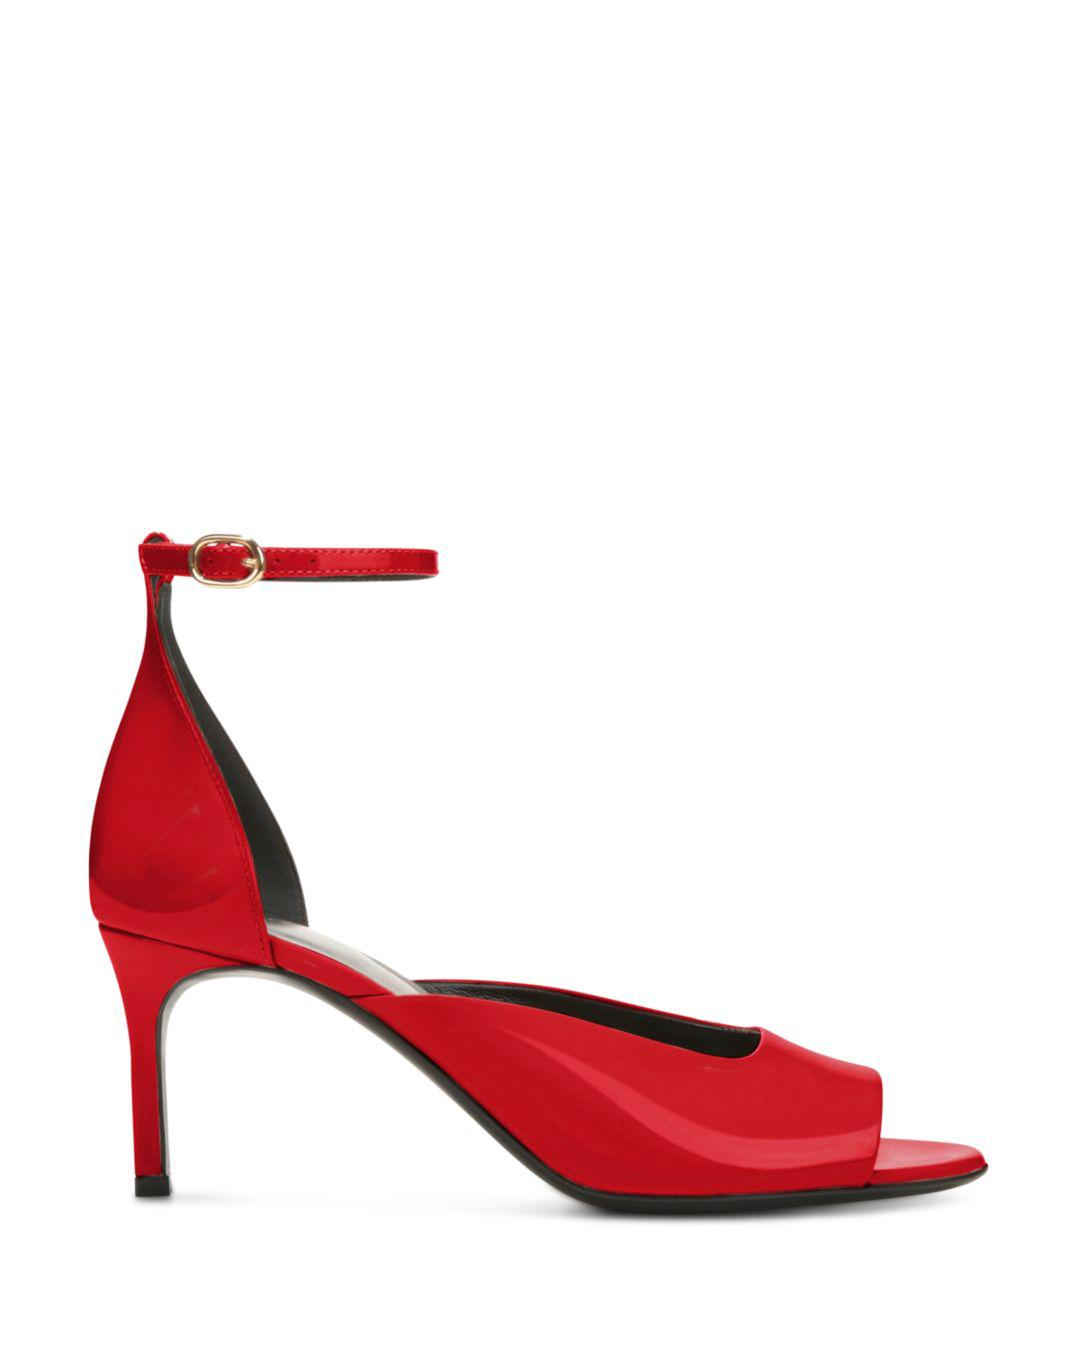 8032e7bb7f02 Lyst - Via Spiga Women s Jennie Patent Leather Mid-heel Sandals in Red -  Save 33%